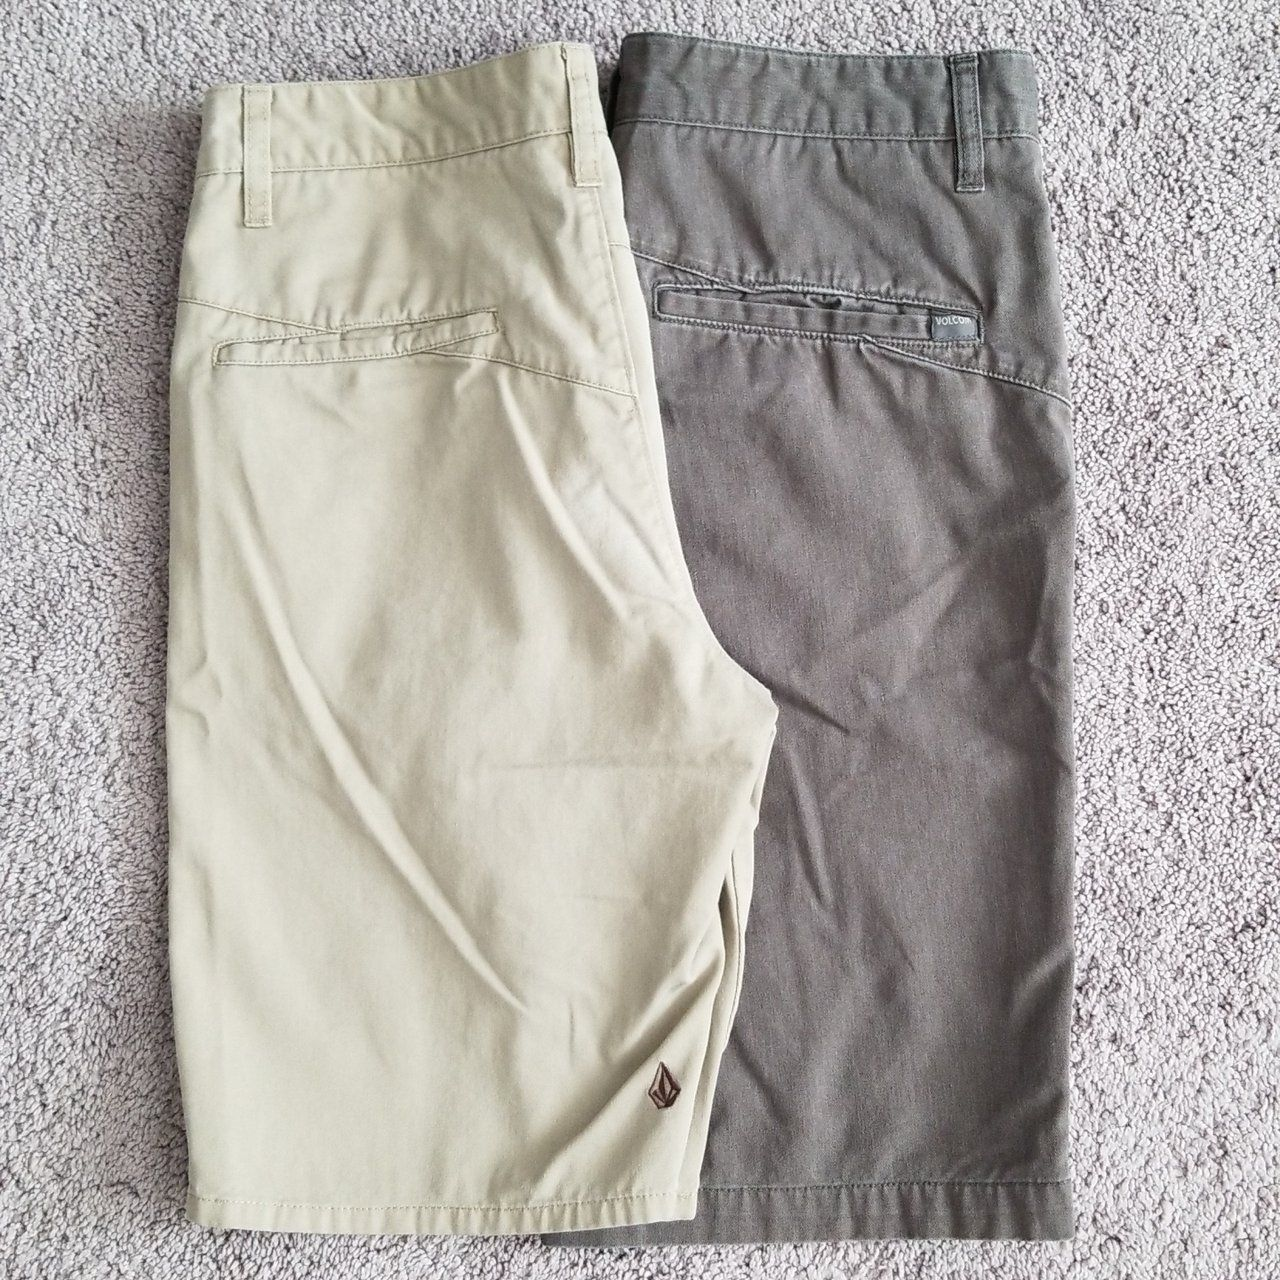 2 pack brown and grey Volcom shorts